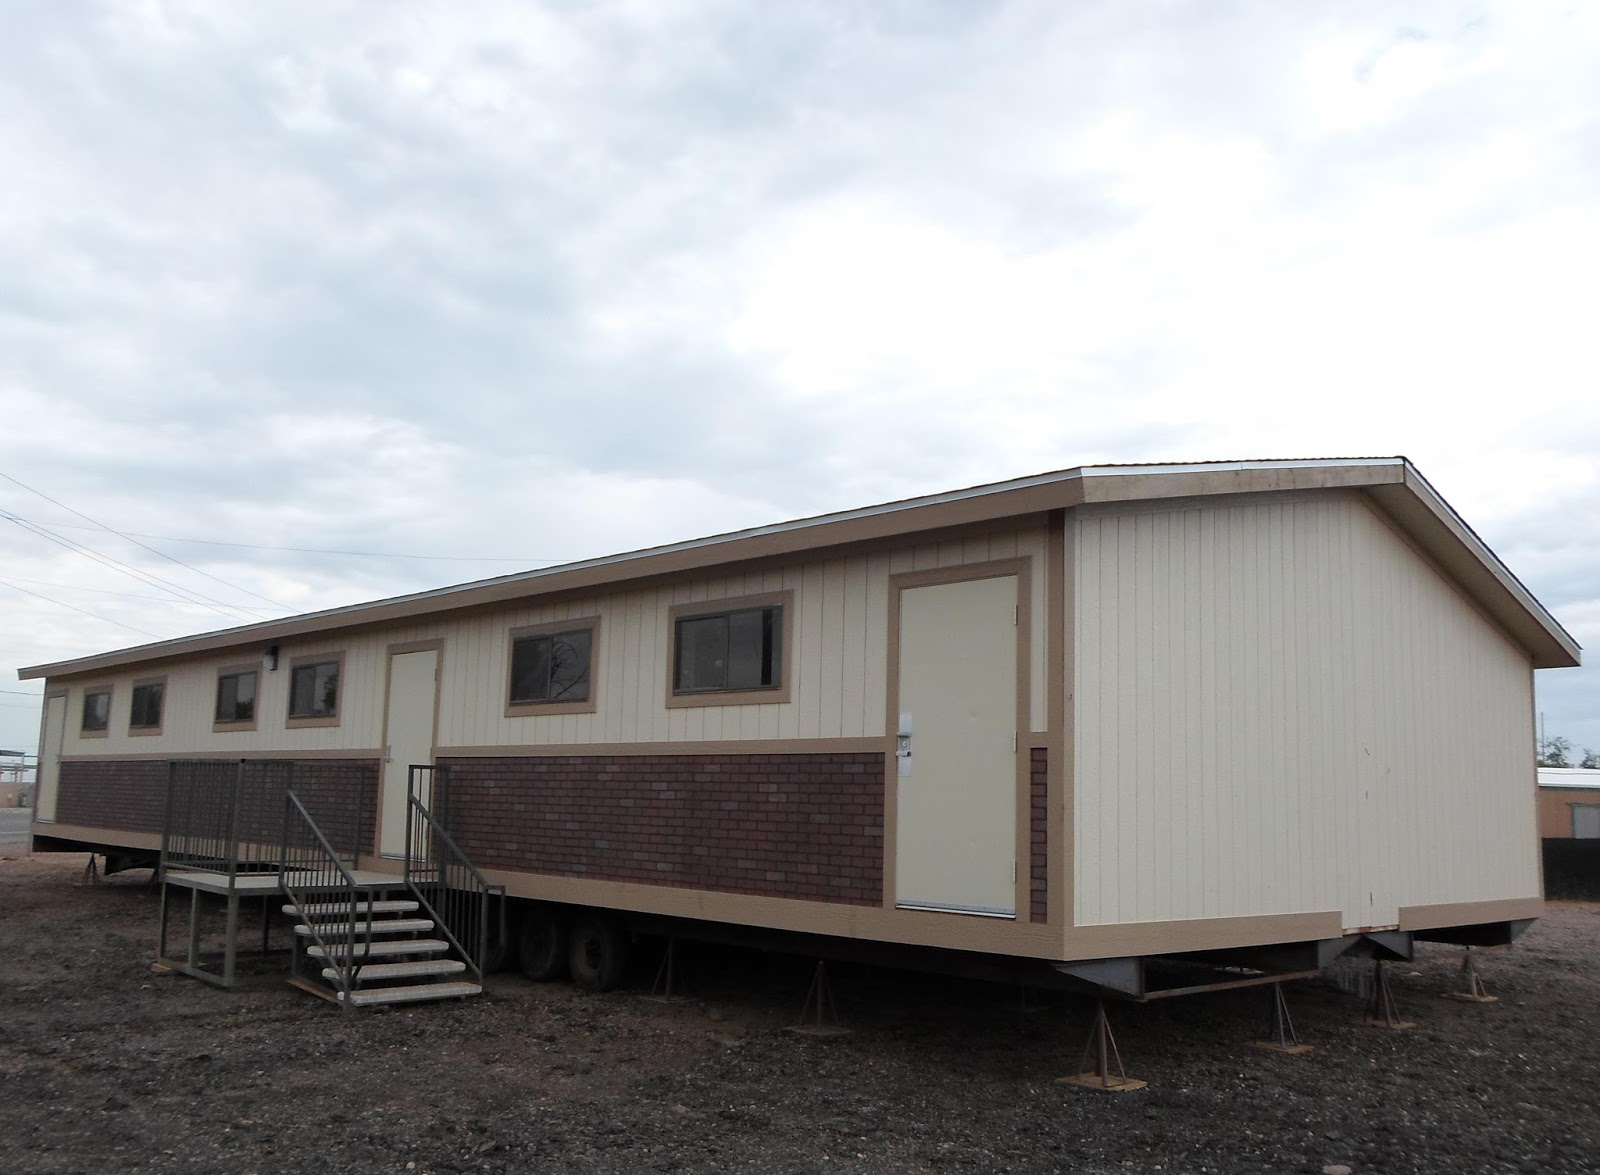 modular solutions ltd the experts on prefabricated